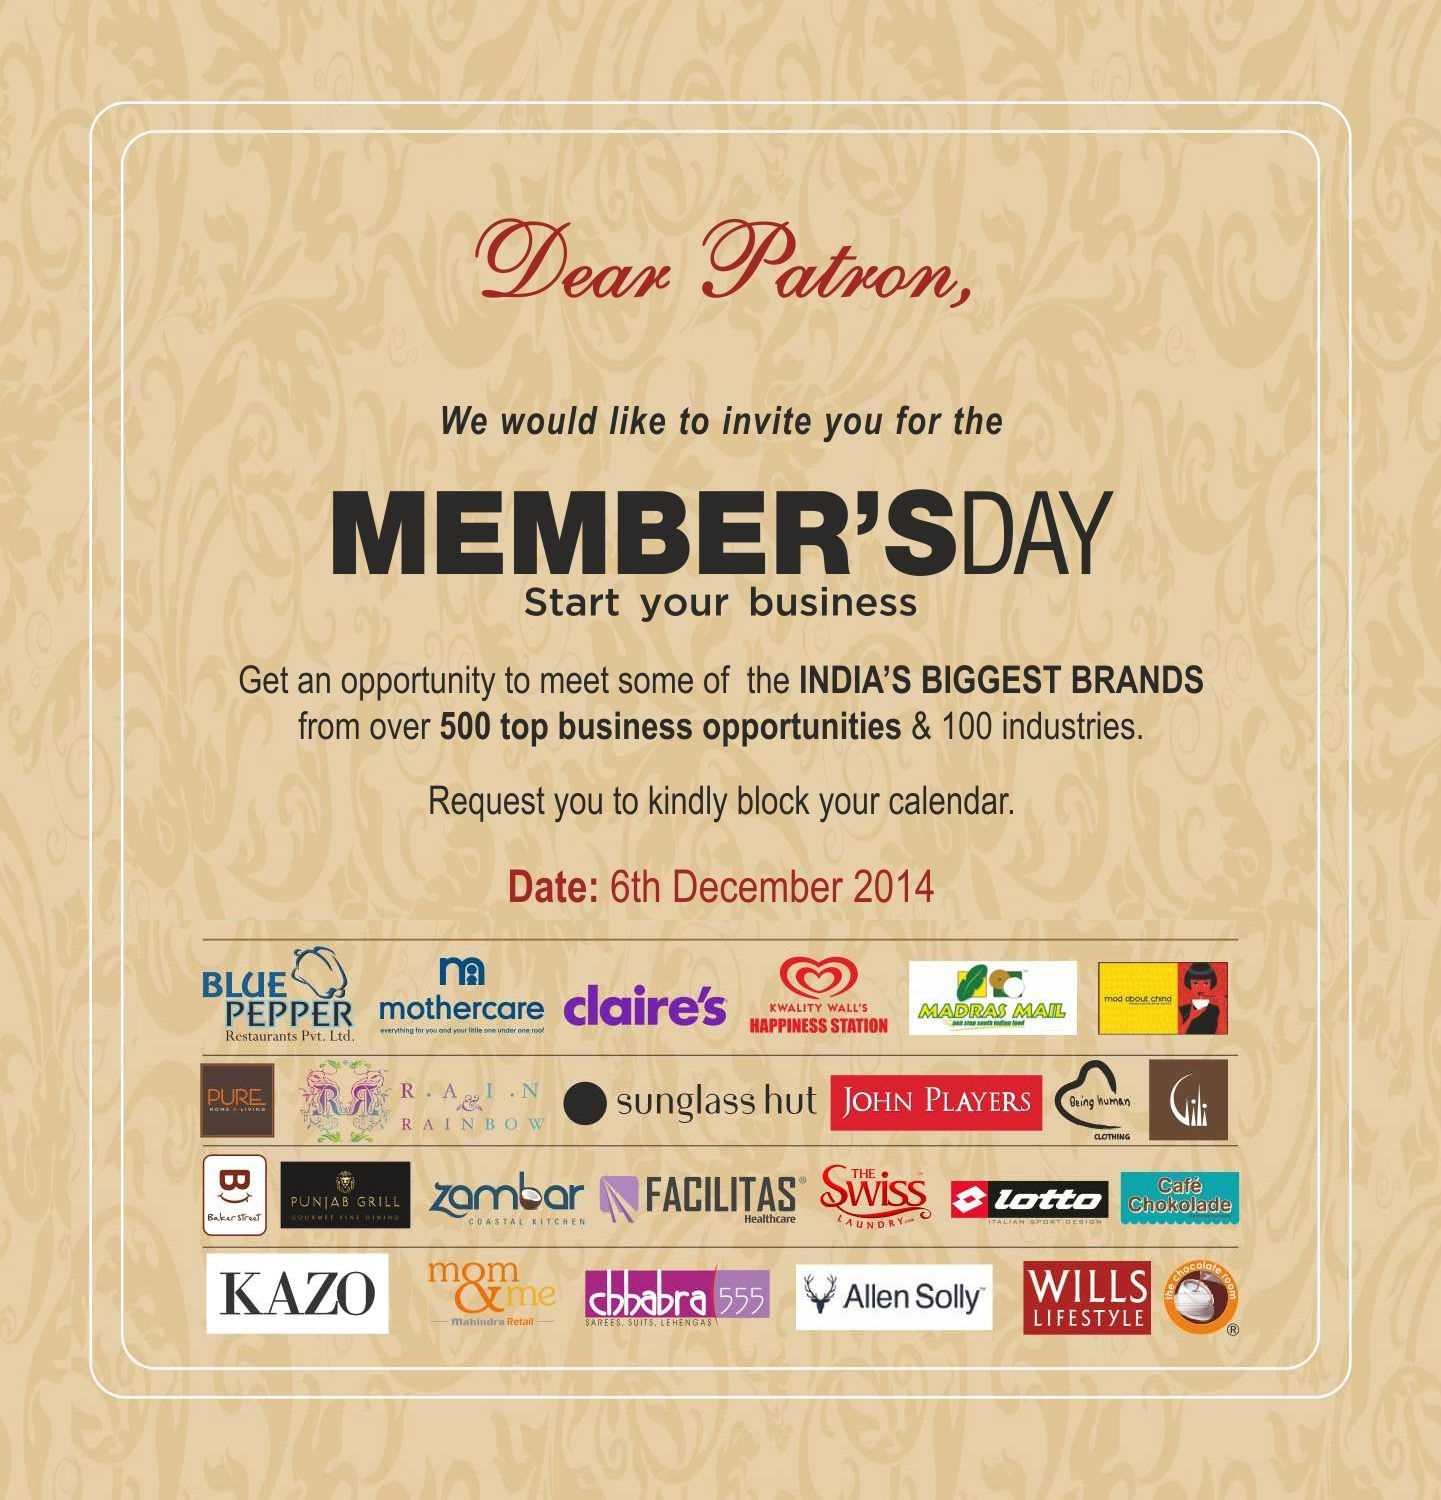 MEMBER S DAY Start your business Get an opportunity to meet some